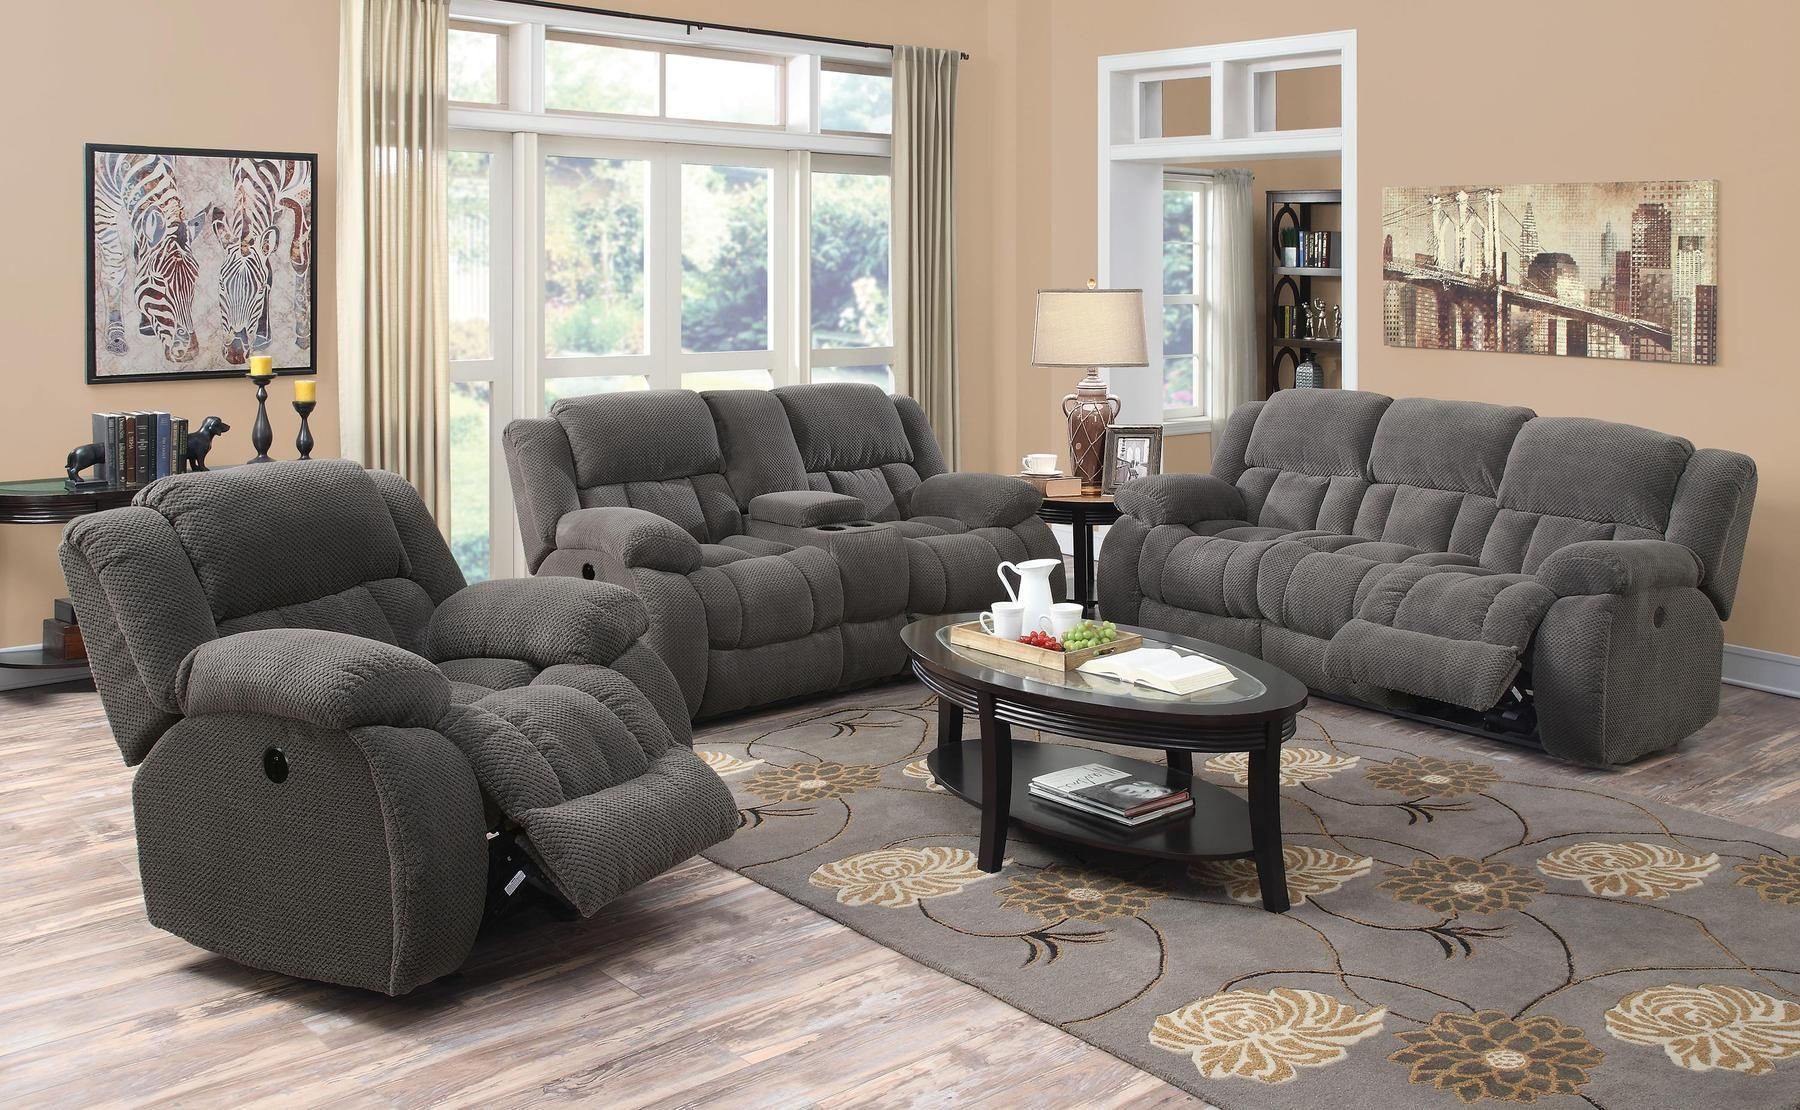 Best Weissman Gray Sofa Living Room Sets Cheap Living Room 640 x 480